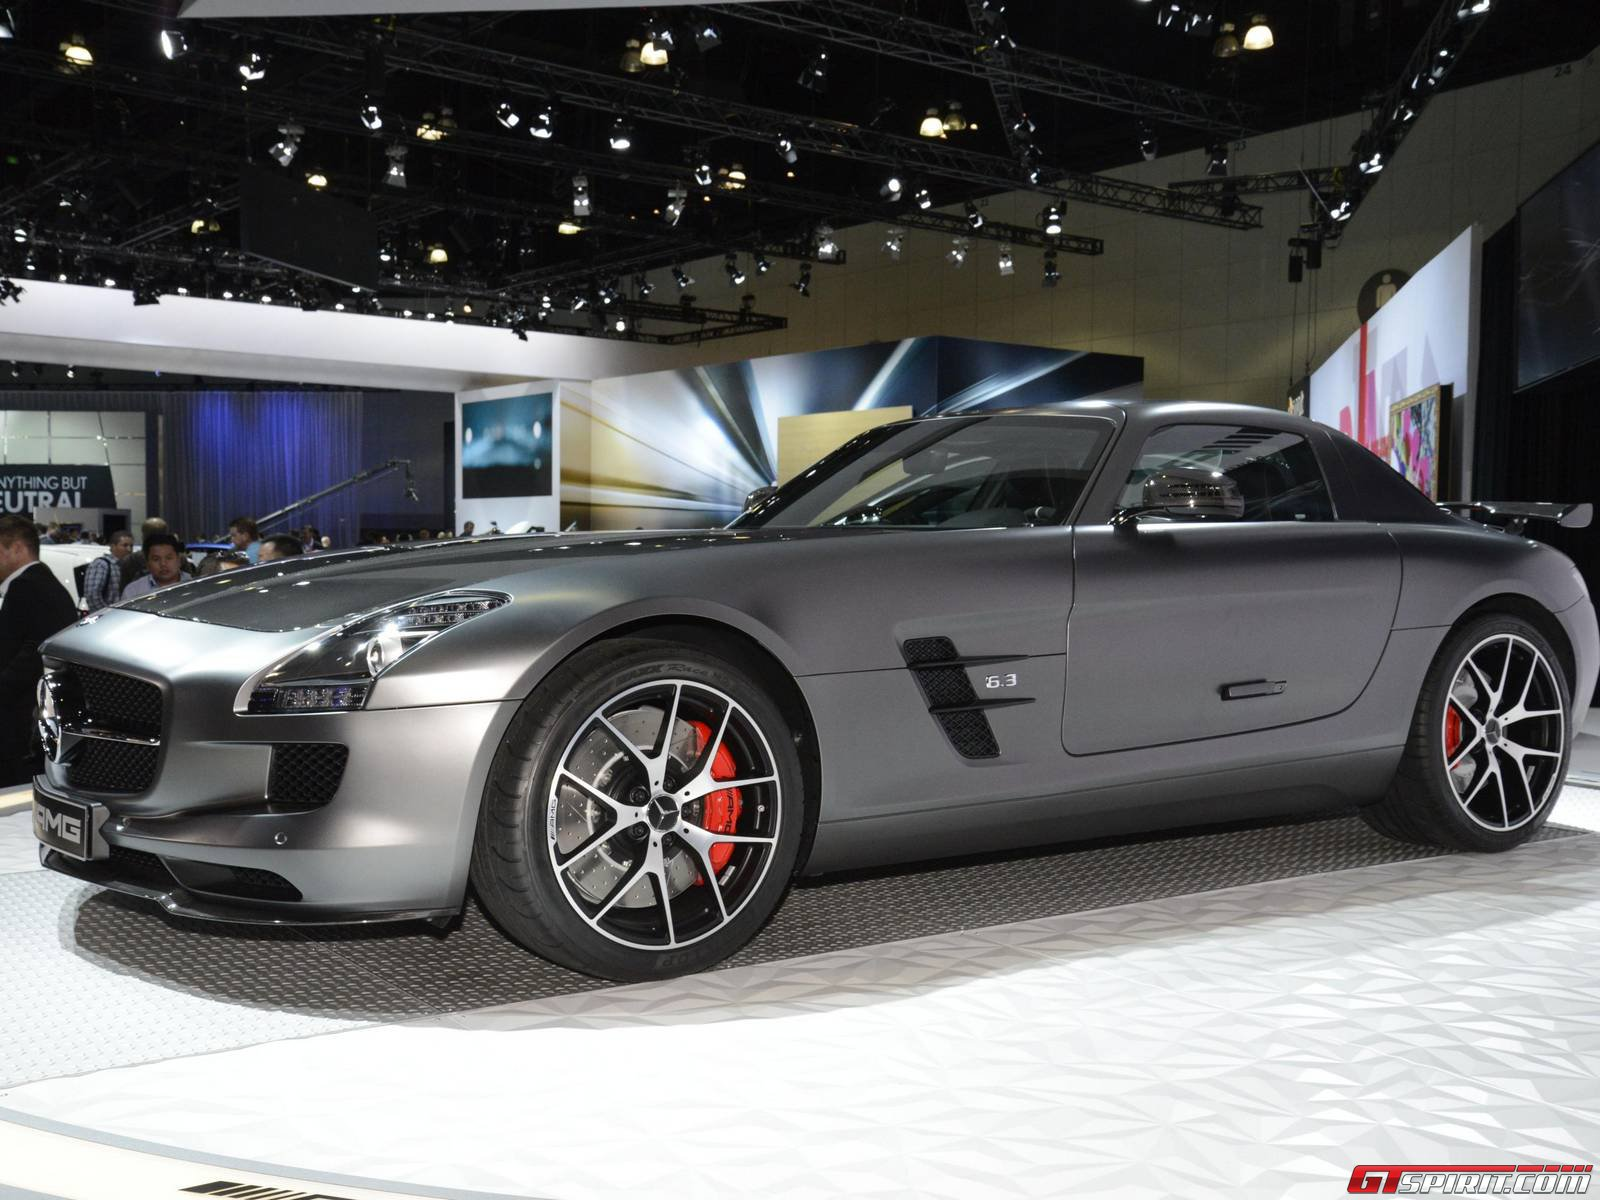 Mercedes-Benz Sls Amg Gt Final Edition #15